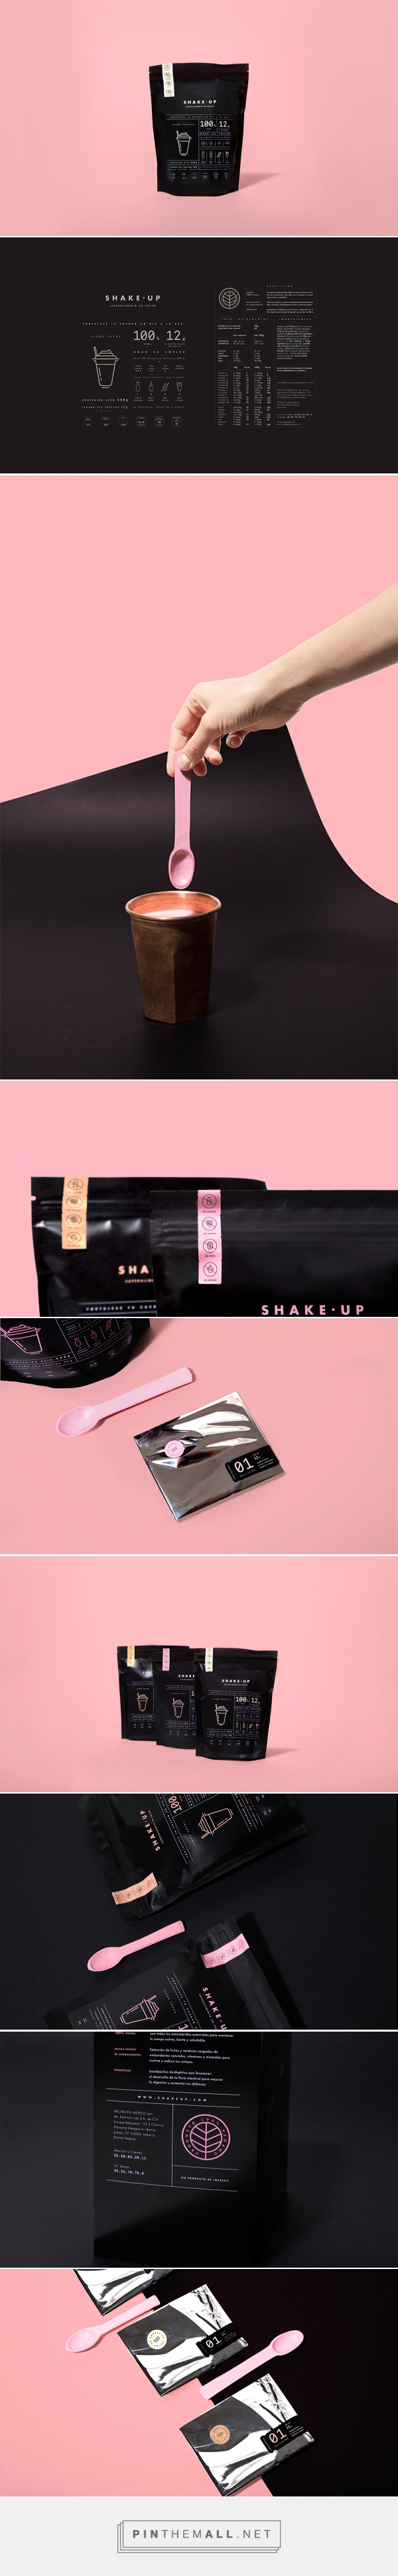 Art direction branding and packaging for shake up on - Candy candy diva futura ...